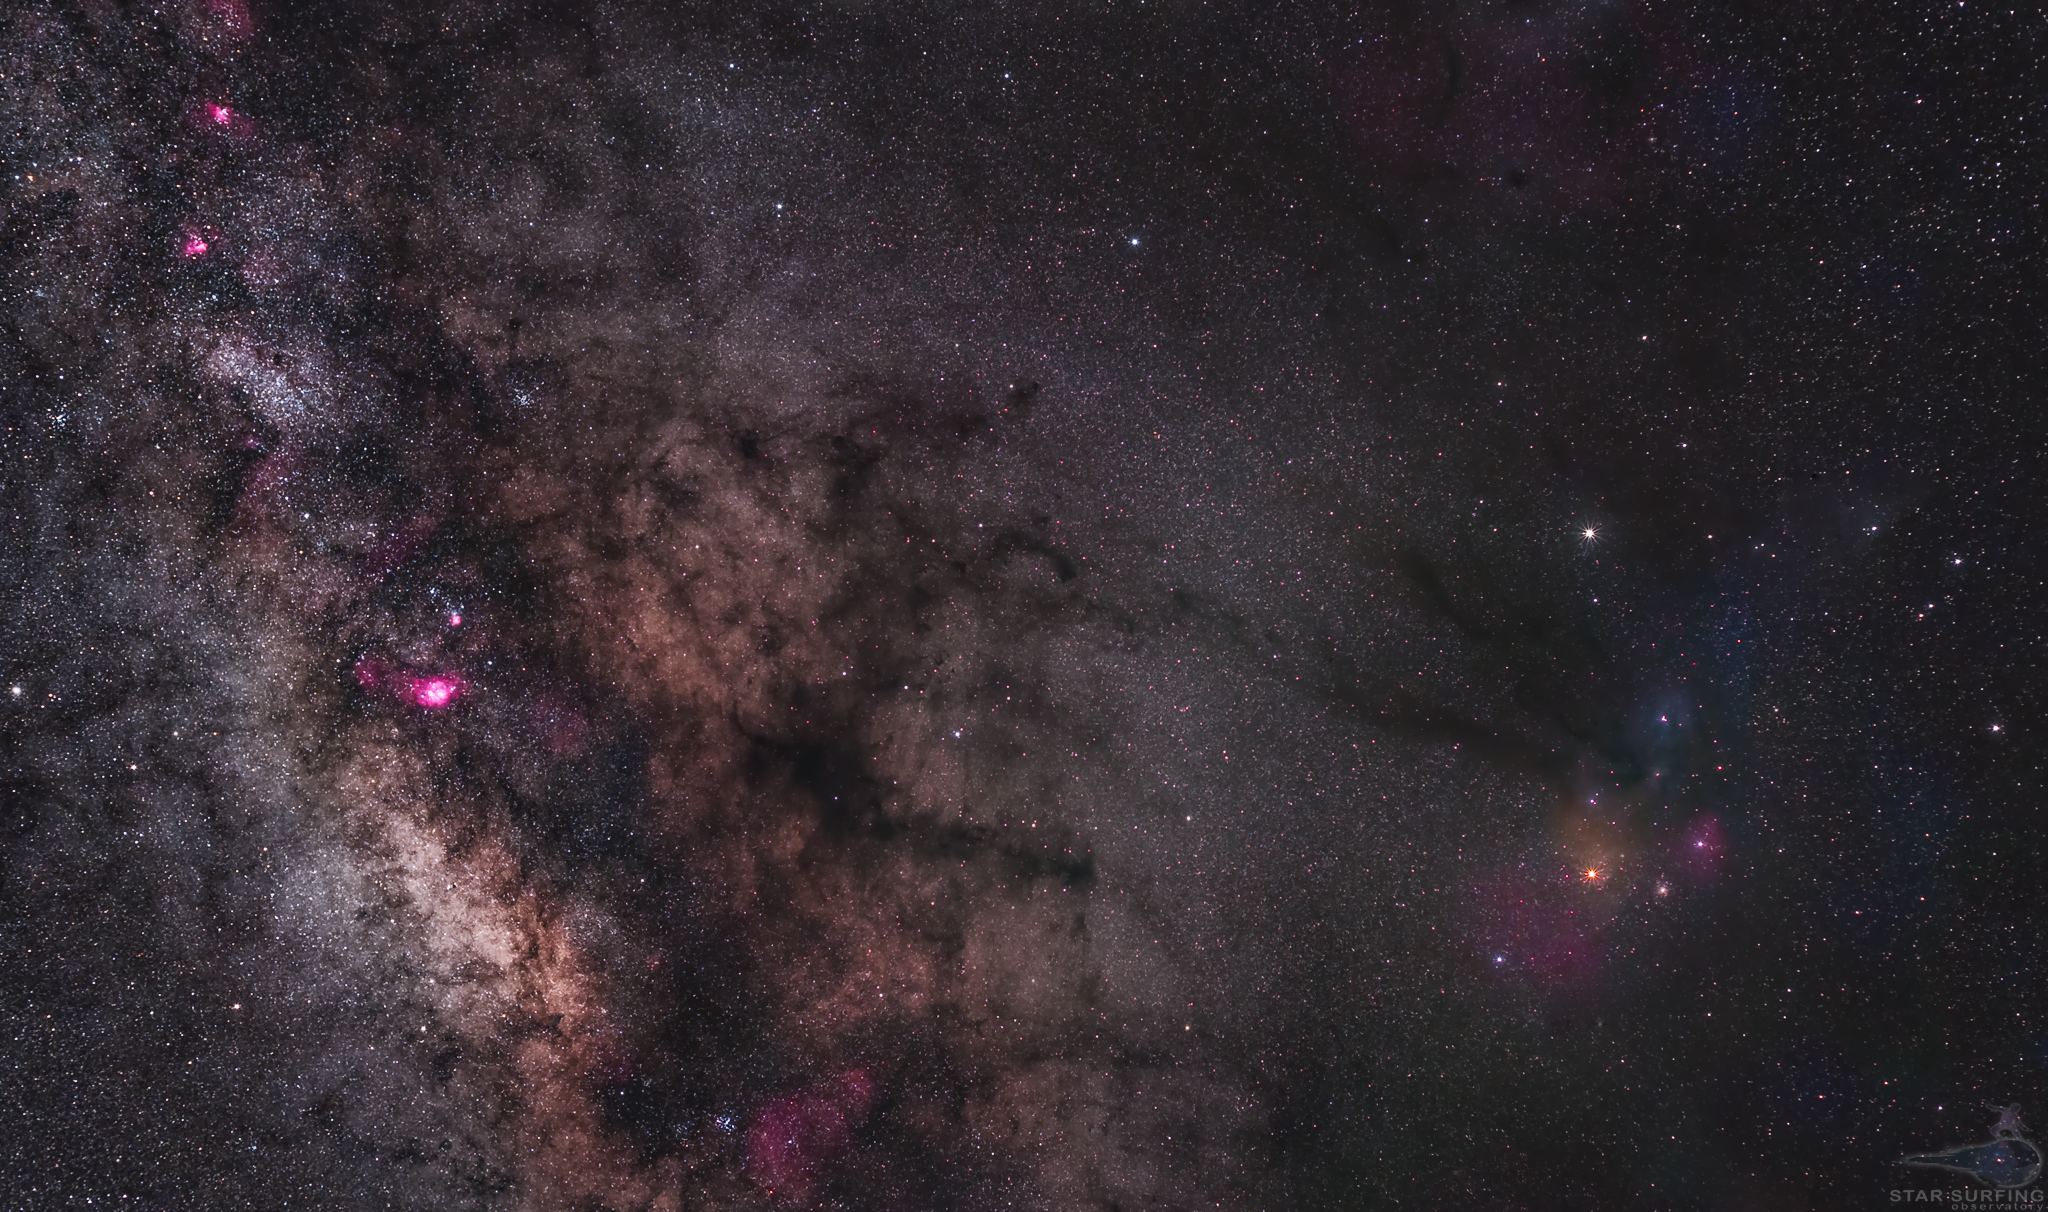 Antares-Rho Ophiuchus Complex and milky way